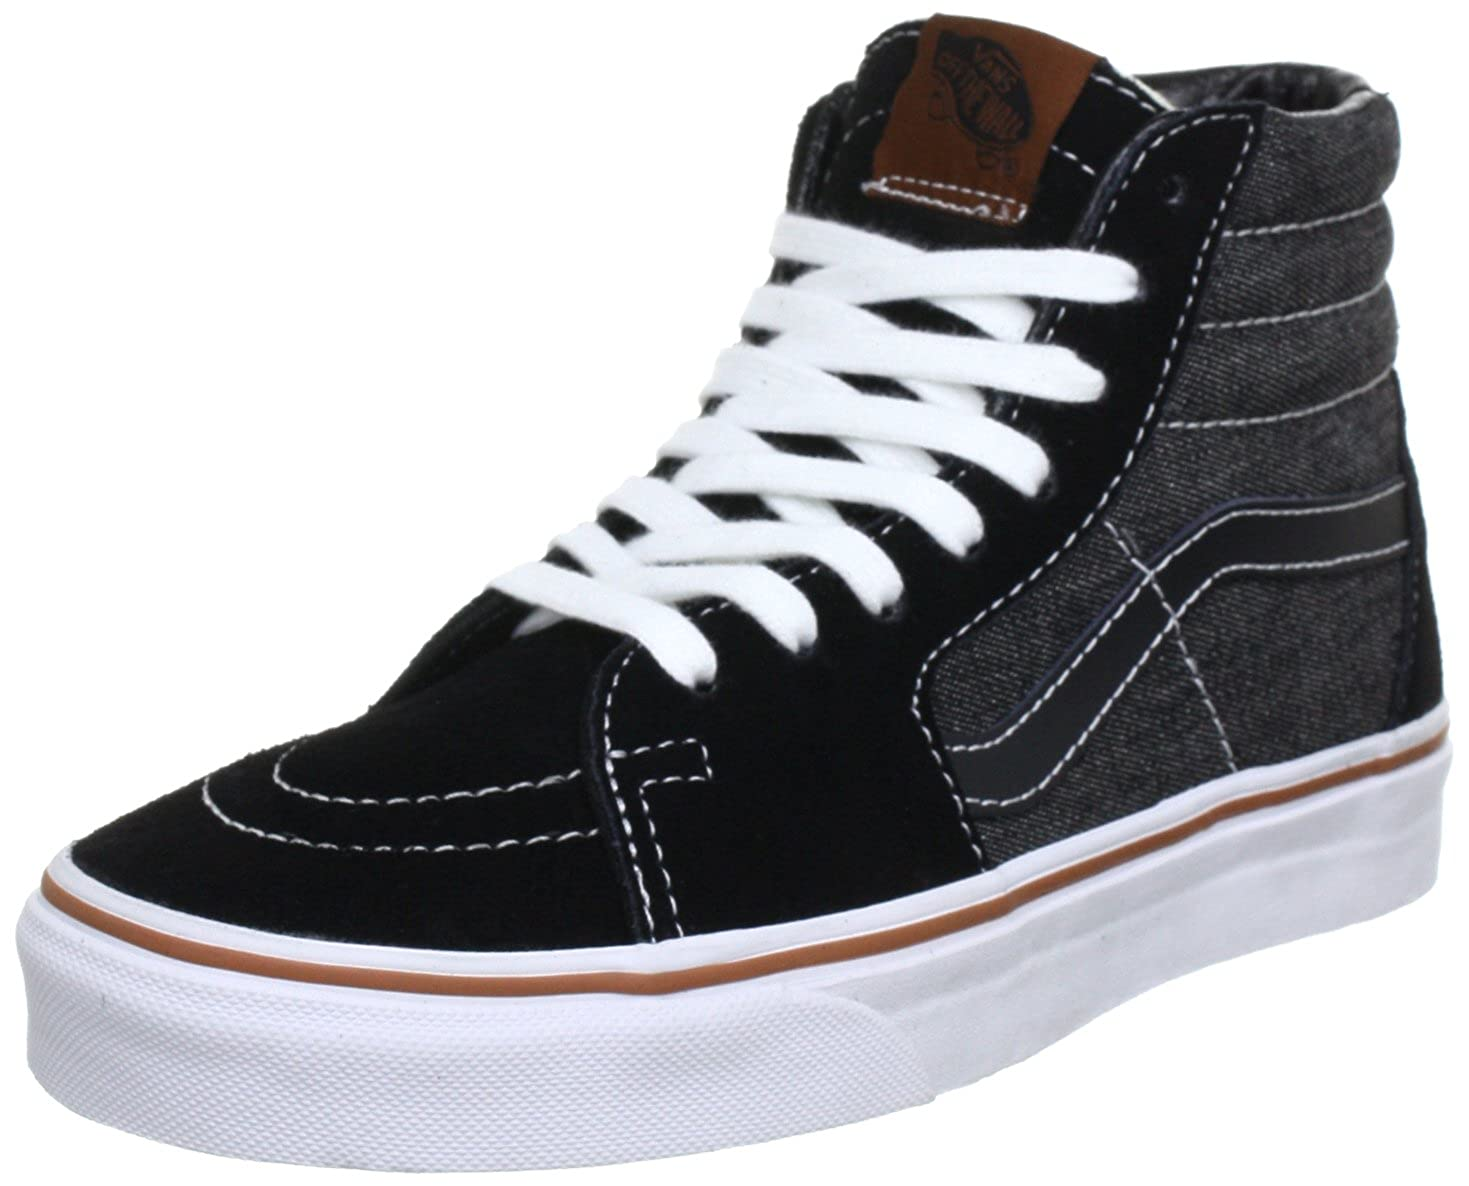 Vans Unisex - Adult U SK8-HI DARK SHADOW/GRE High Top Black ...